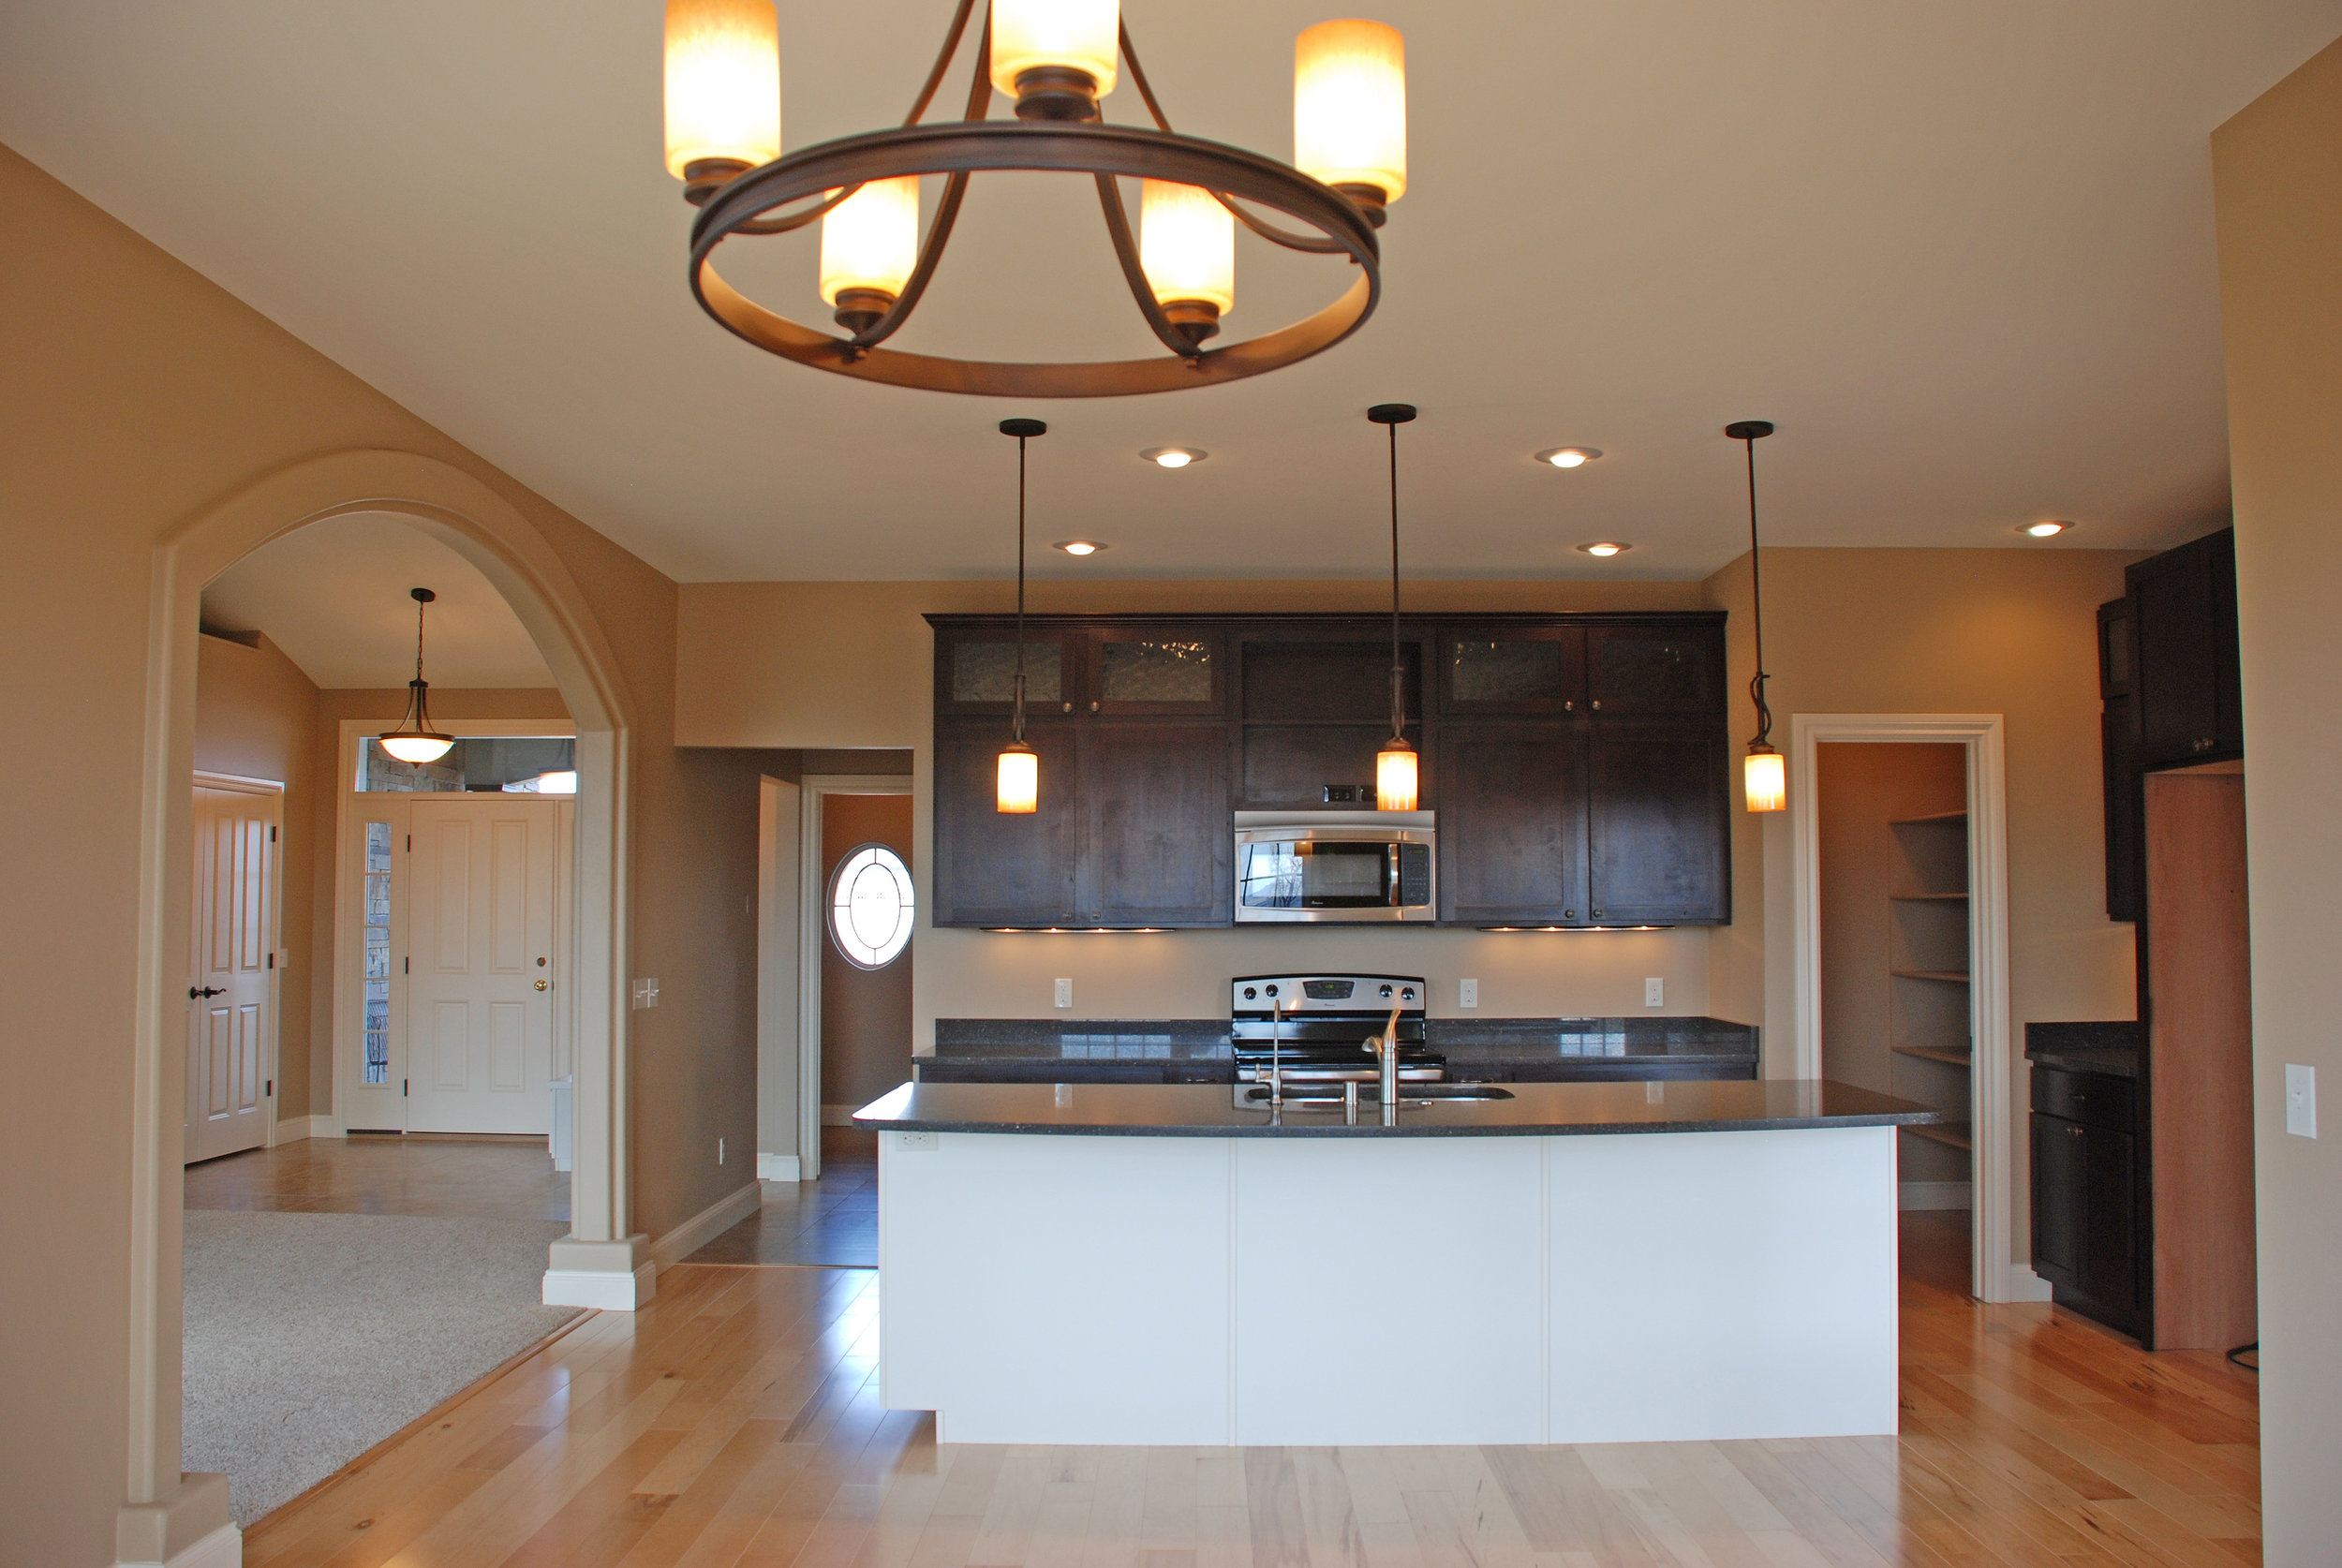 kitchen-with-dining-rm-light.jpg